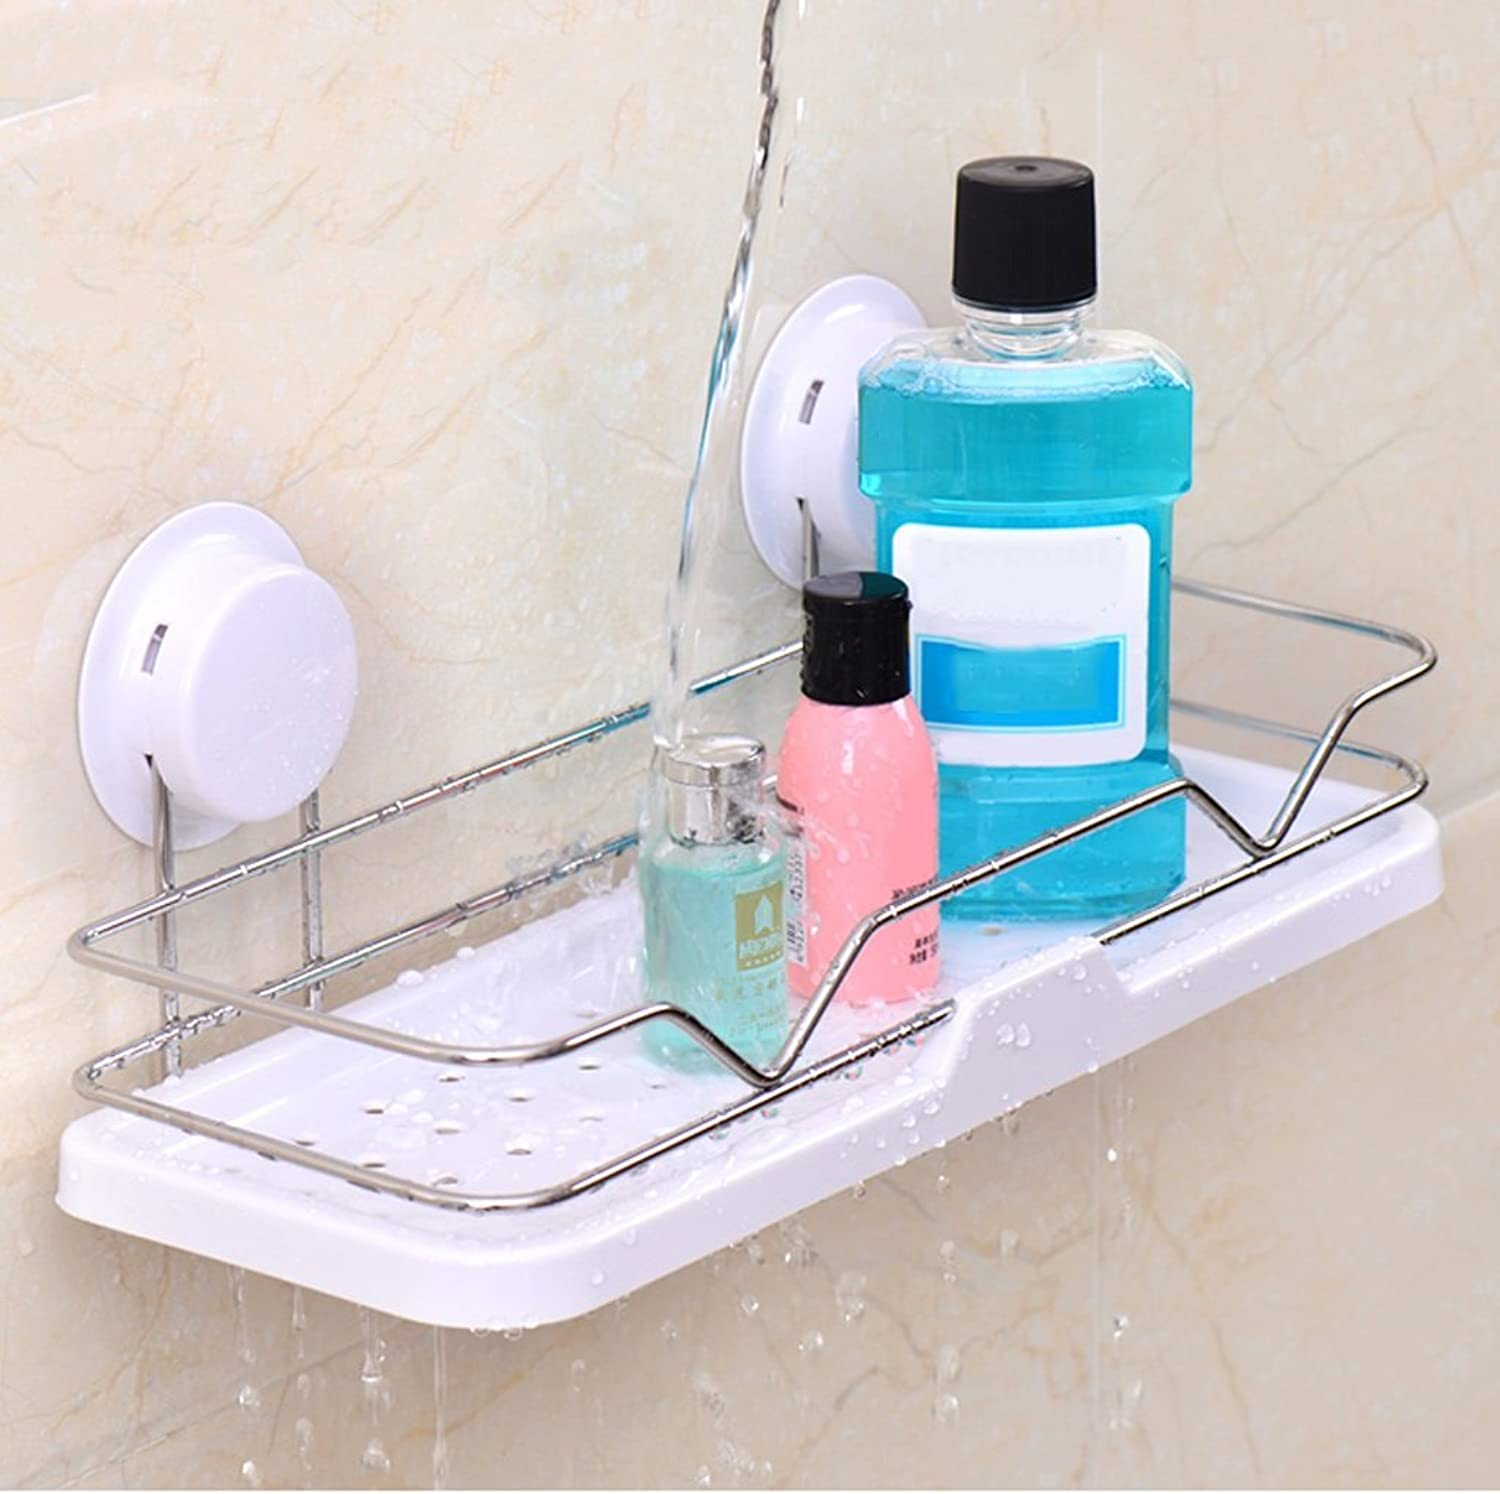 Bathroom rack Stainless steel bathroom racks, wall-mounted wash basin shelf, wall-free punch storage items Multifunction Home DecorationA+